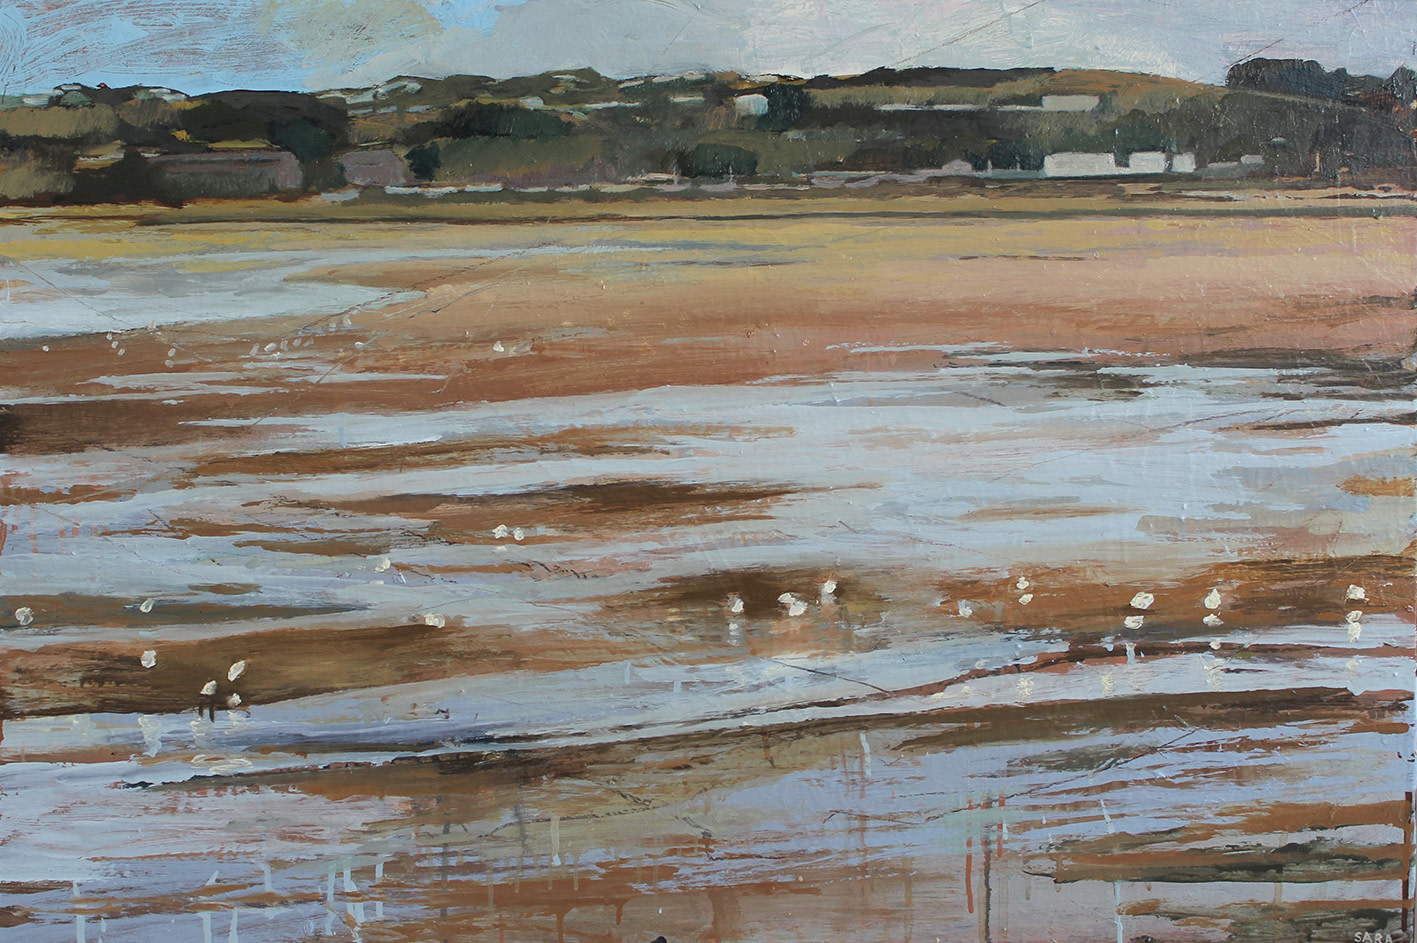 "<span class=""link fancybox-details-link""><a href=""/artists/159-sara-dudman-rwa/works/7044-sara-dudman-rwa-herring-gulls-hayle-estuary-1-2020/"">View Detail Page</a></span><div class=""artist""><strong>Sara Dudman RWA</strong></div> <div class=""title""><em>Herring Gulls (Hayle Estuary) 1</em>, 2020</div> <div class=""medium"">Oil on Canvas</div> <div class=""dimensions"">92cms x 61cms (unframed)<br /> 98cms x 67cms tray framed</div><div class=""copyright_line"">Own Art £160 x 10 months, 0% APR</div>"